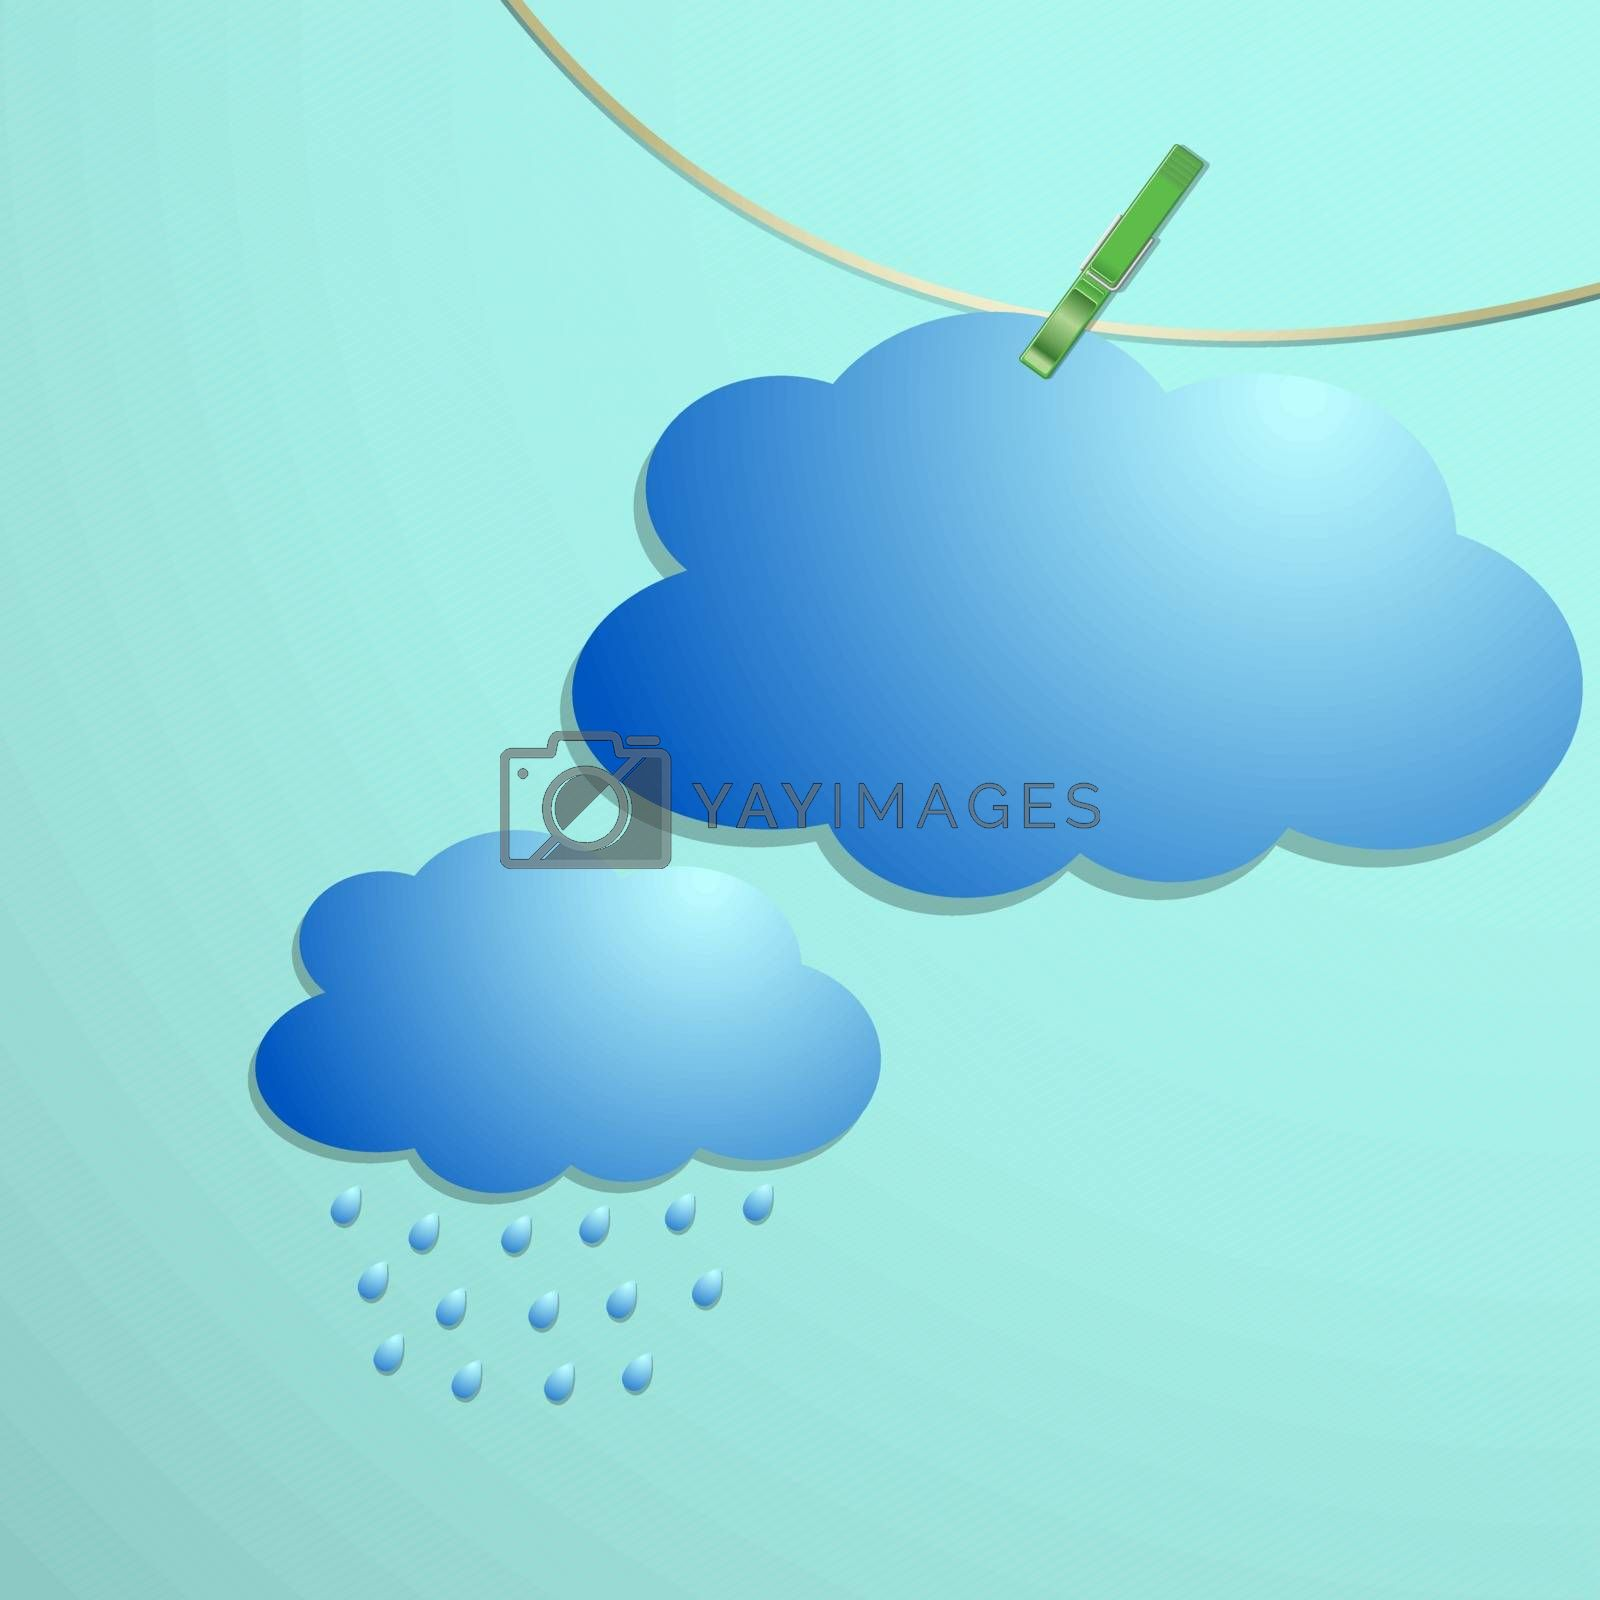 Cloud and rain drops icon hang on string, vector illustration